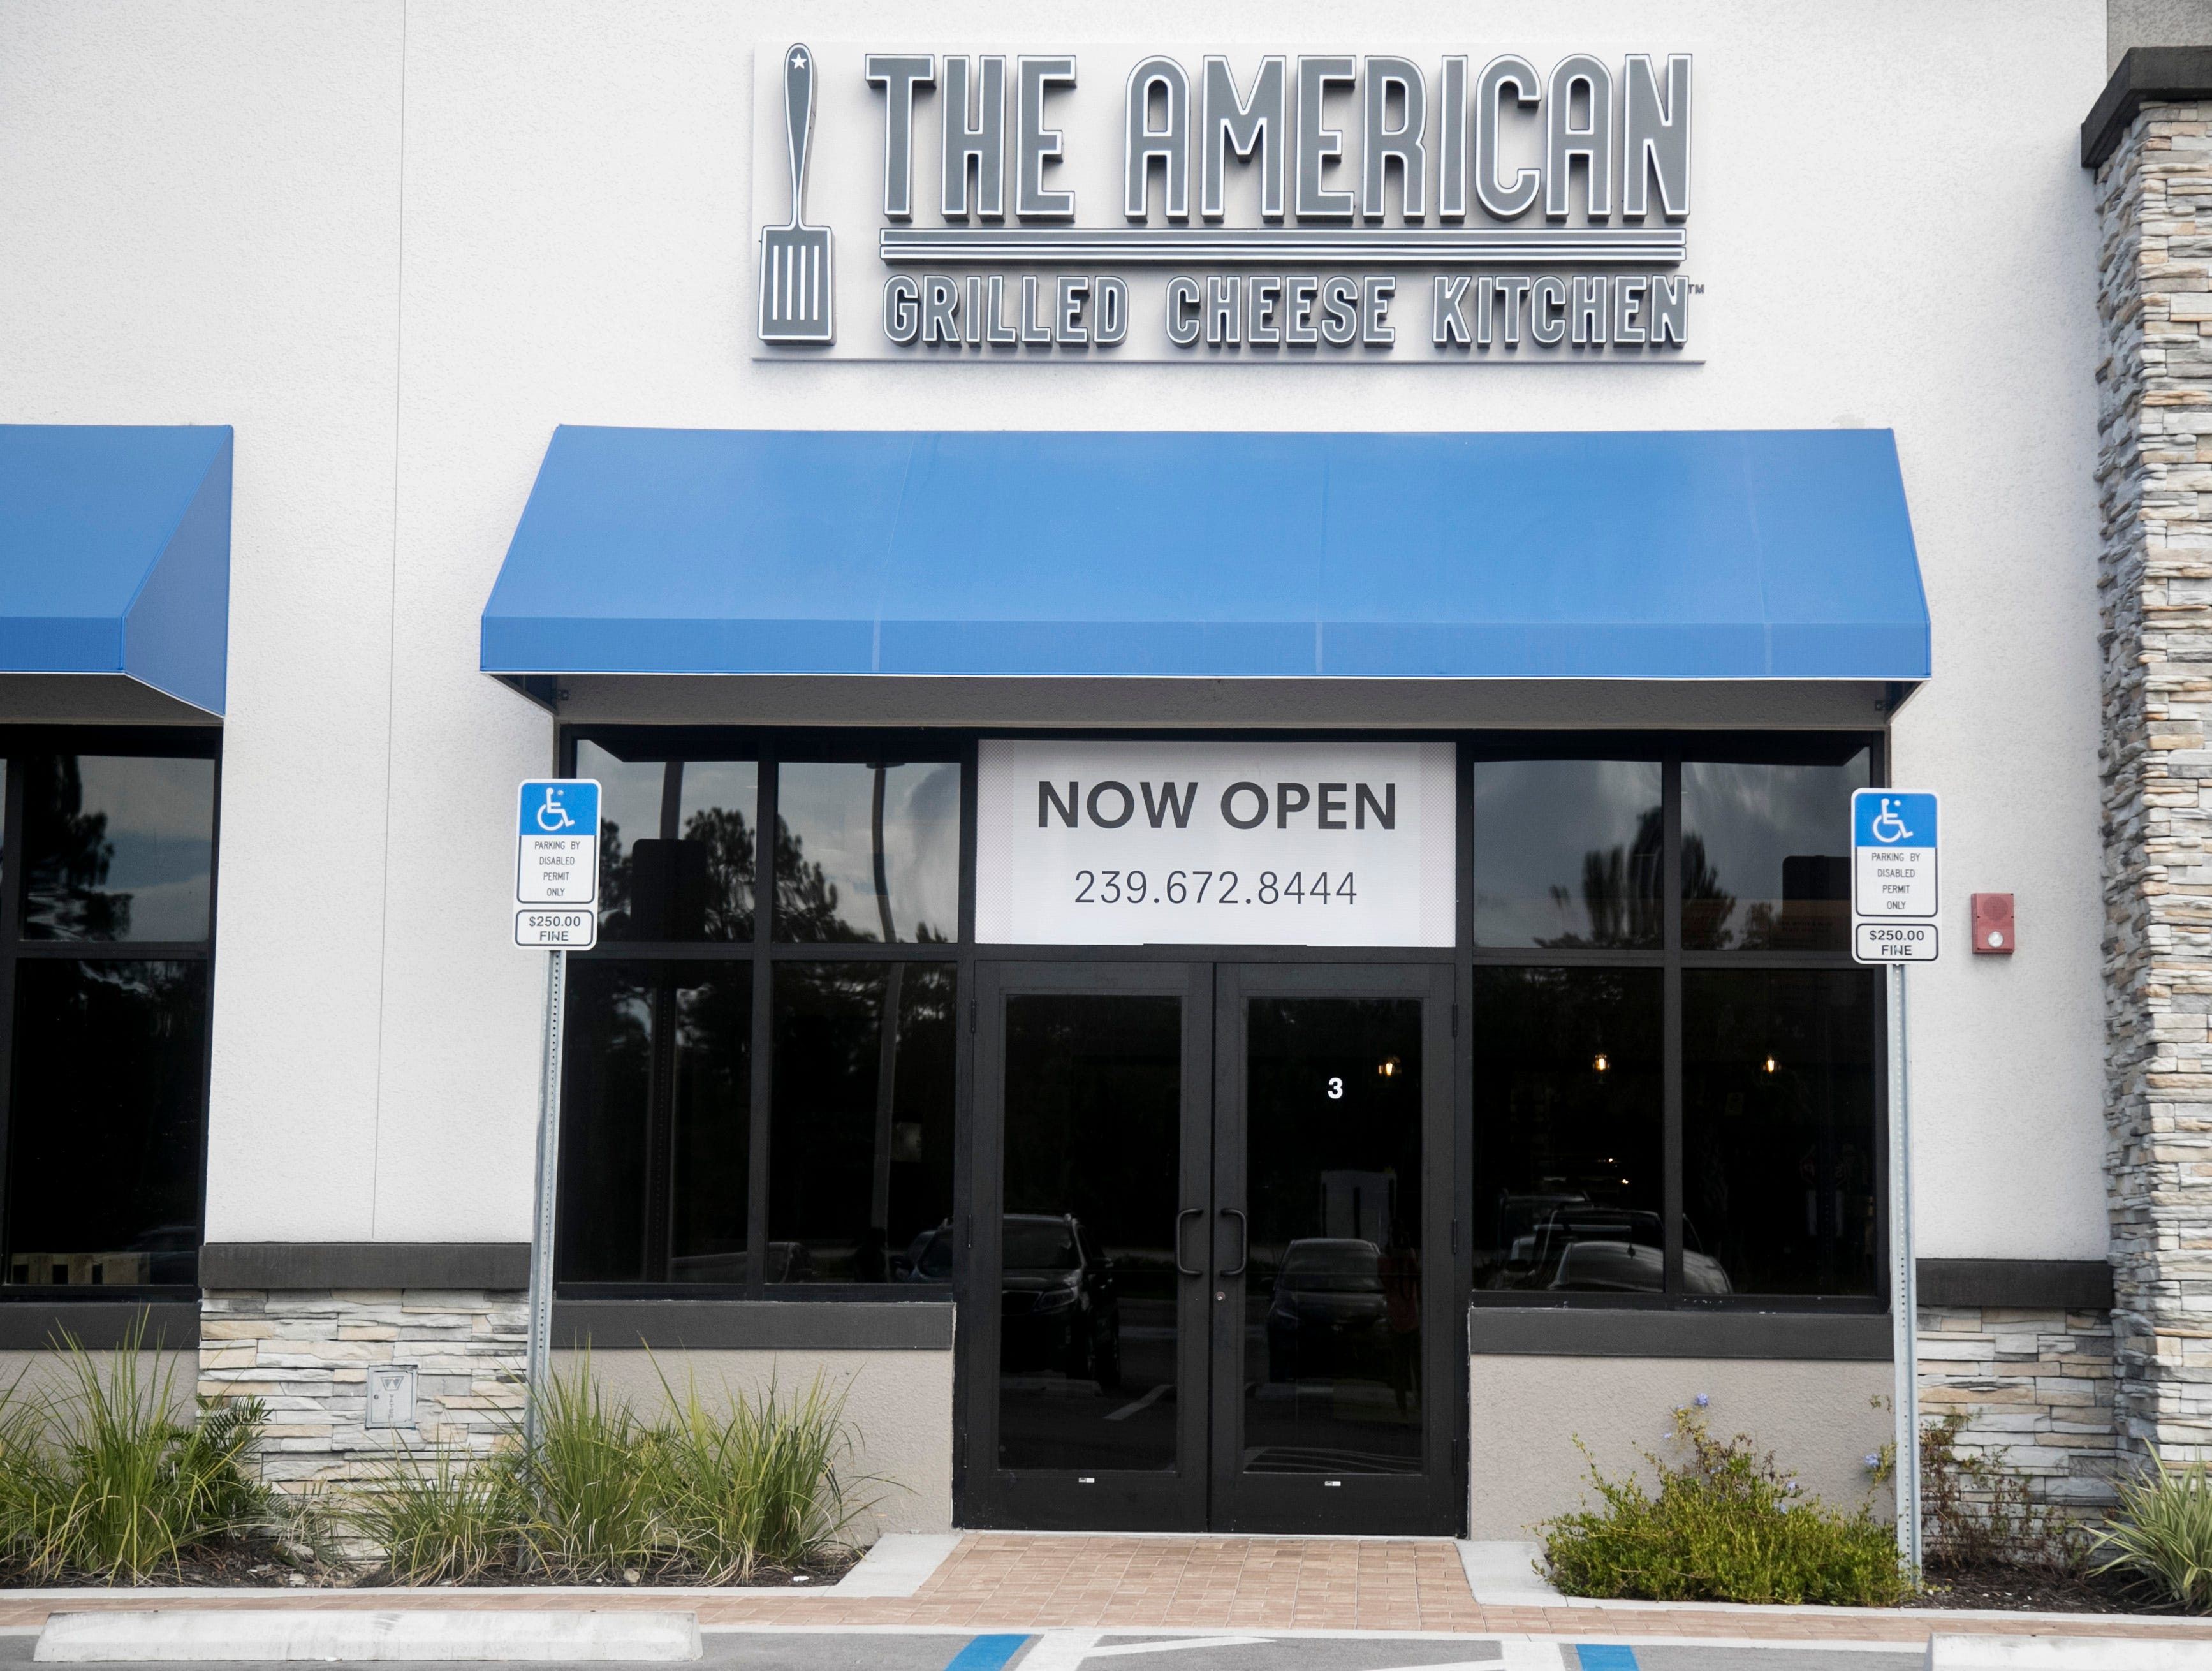 The American Grilled Cheese Kitchen on Six Mile Cypress Parkway in South Fort Myers recently opened.They have a variety of different grilled cheese sandwiches as well as salads, soups and sides. They also serve breakfast.